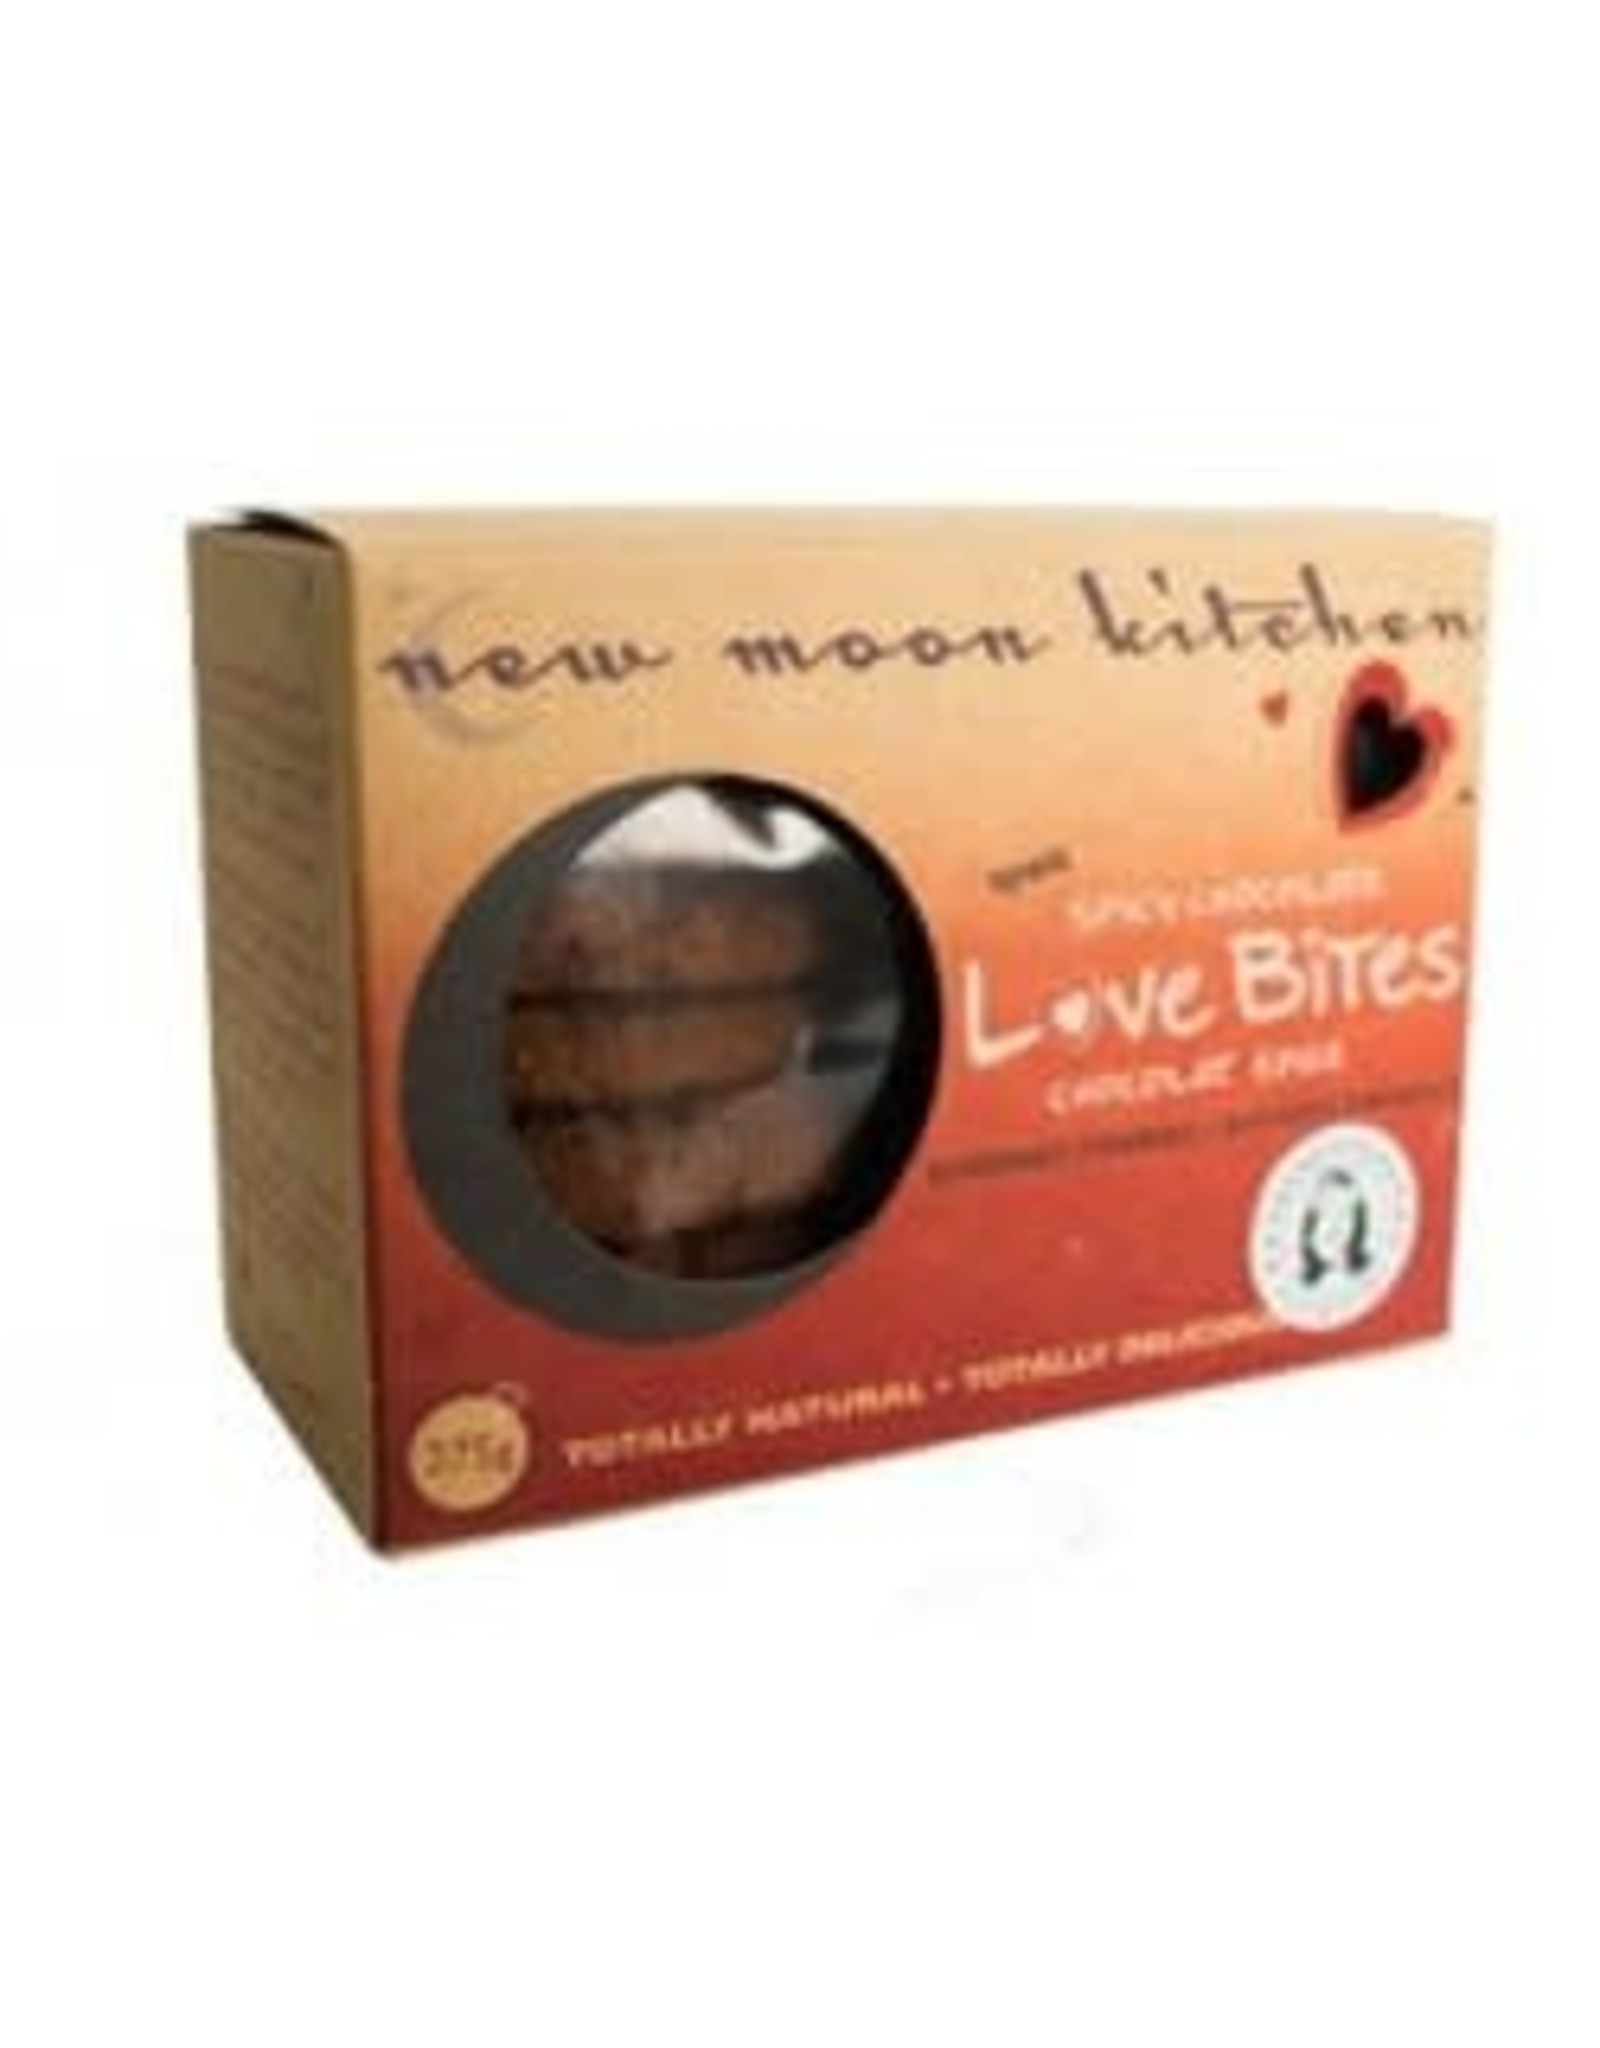 New Moon Kitchen New Moon Kitchen - Biscuits, Lovebites Épicés au Chocolat (275g)